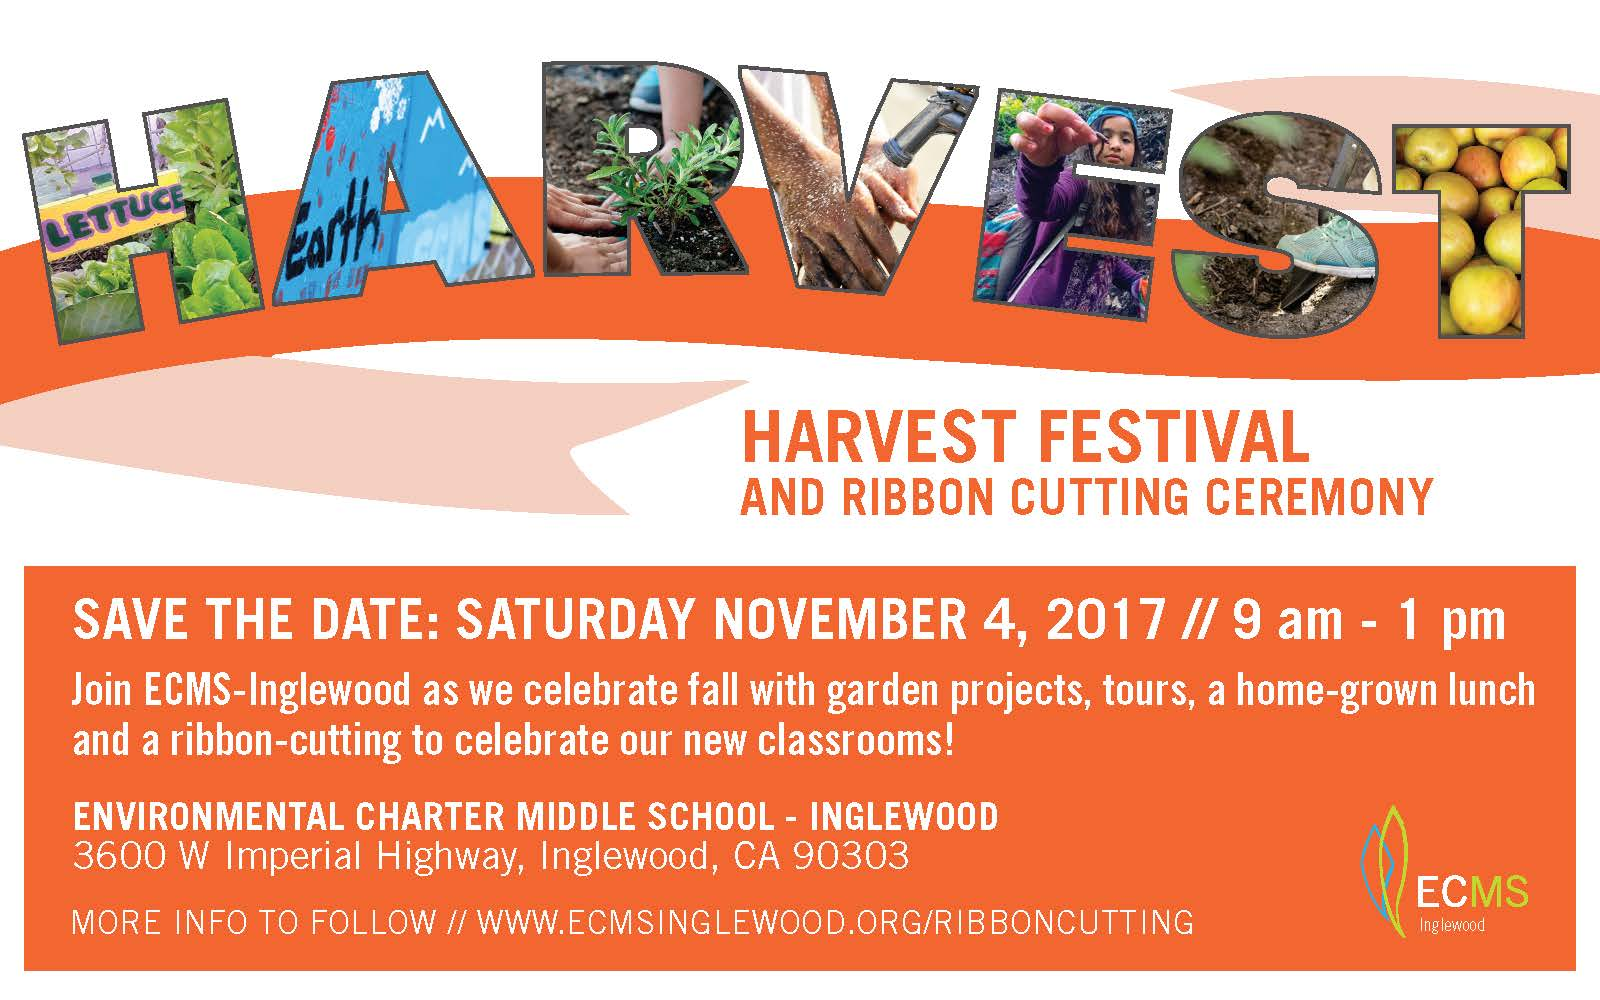 2nd Annual Harvest Festival and Ribbon Cutting